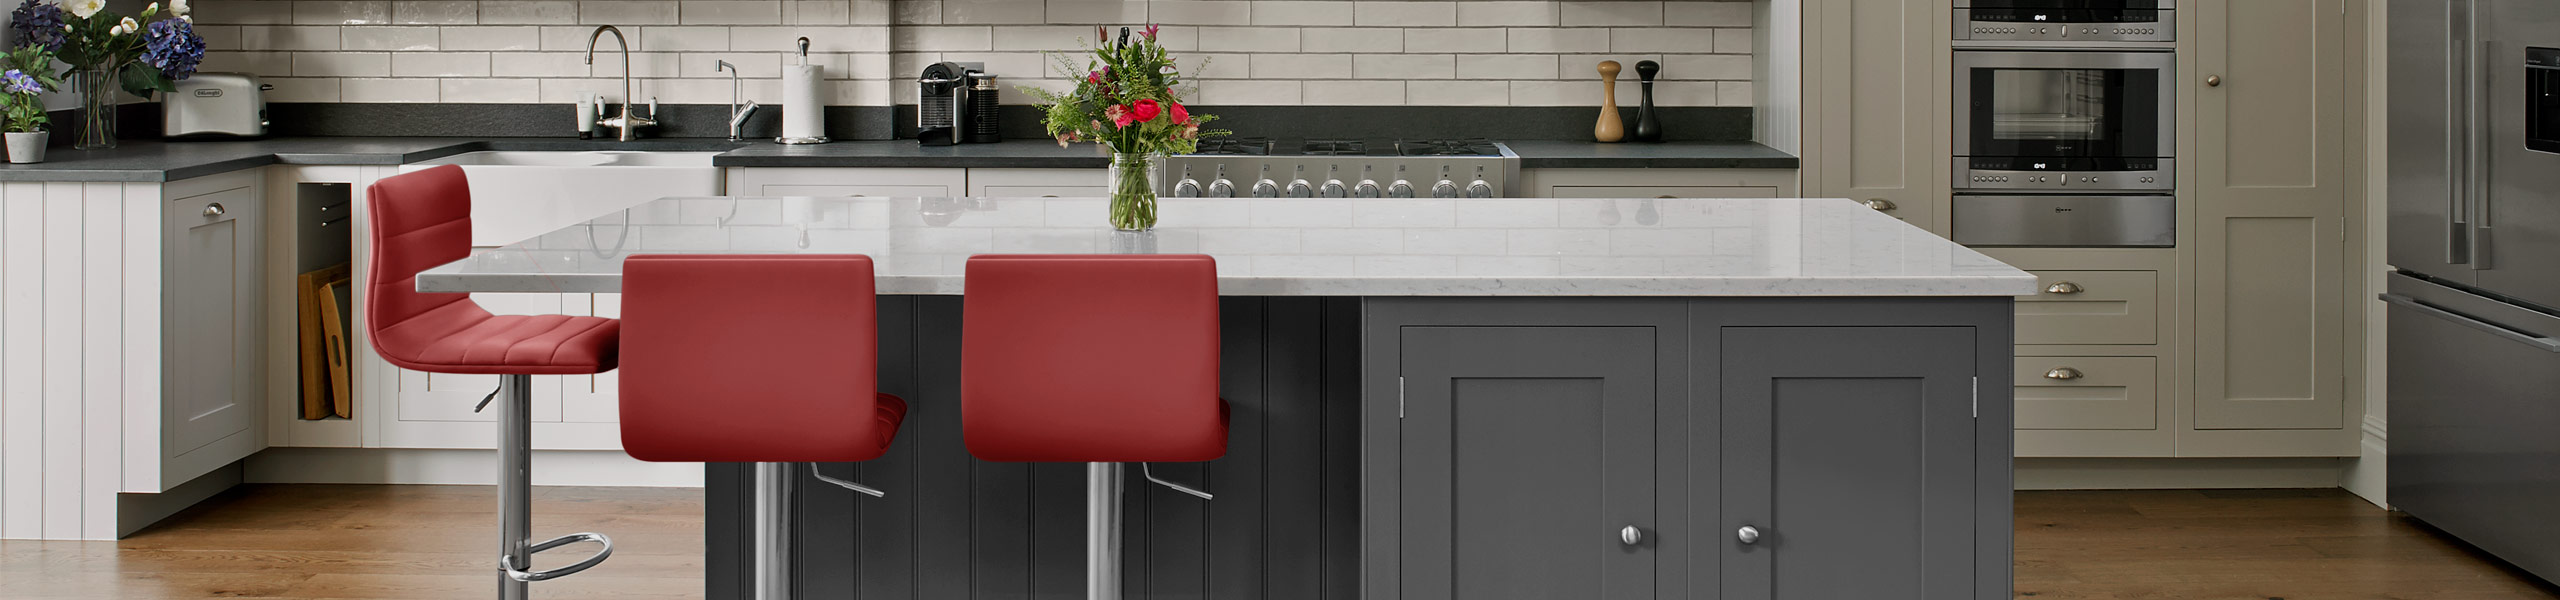 Linear Bar Stool Red Video Banner